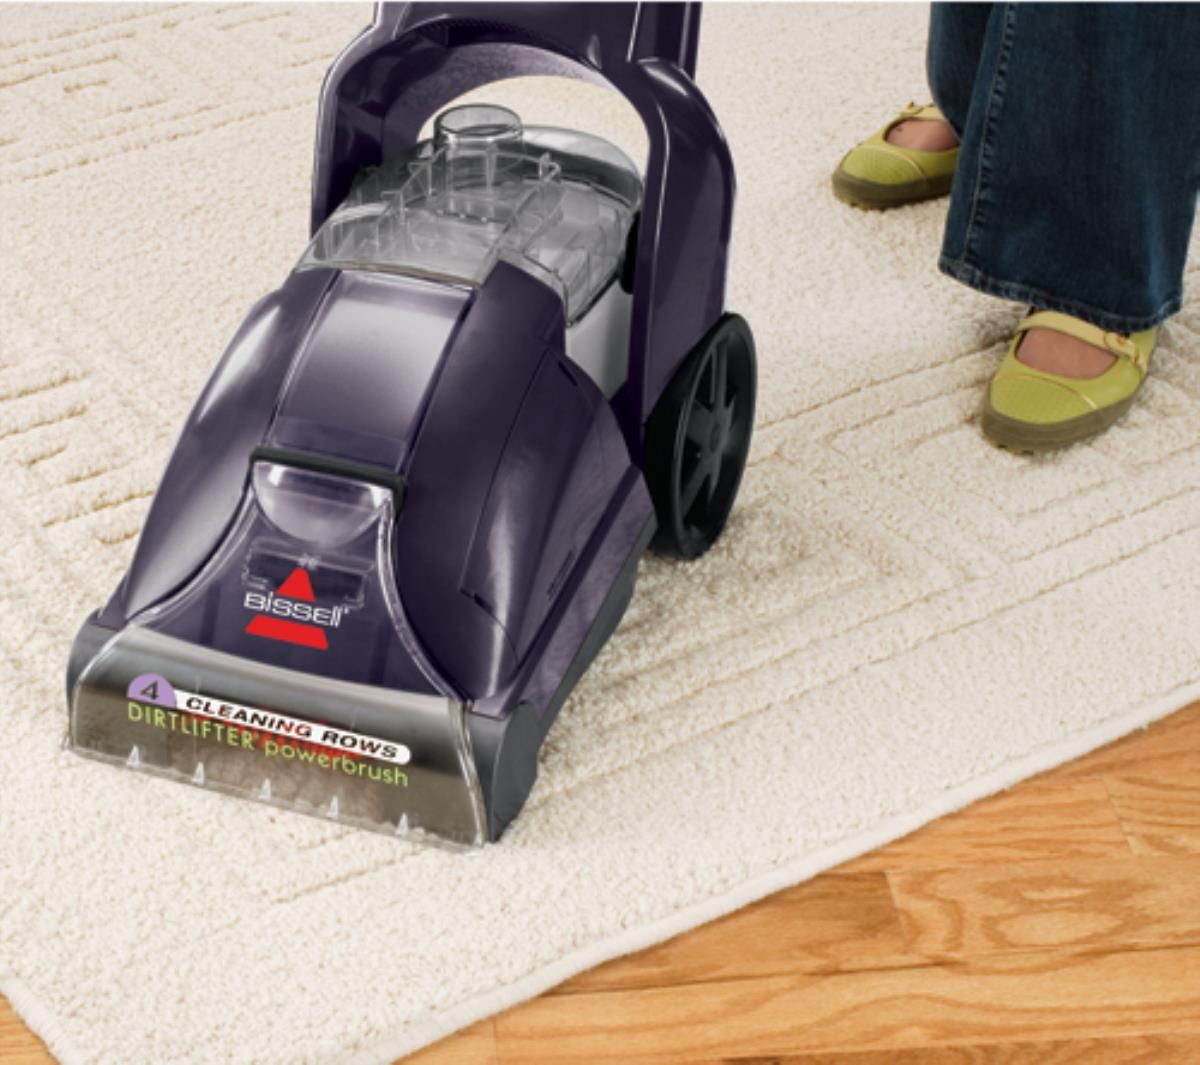 Bissell 1622 PowerLifter PowerBrush Carpet Cleaner